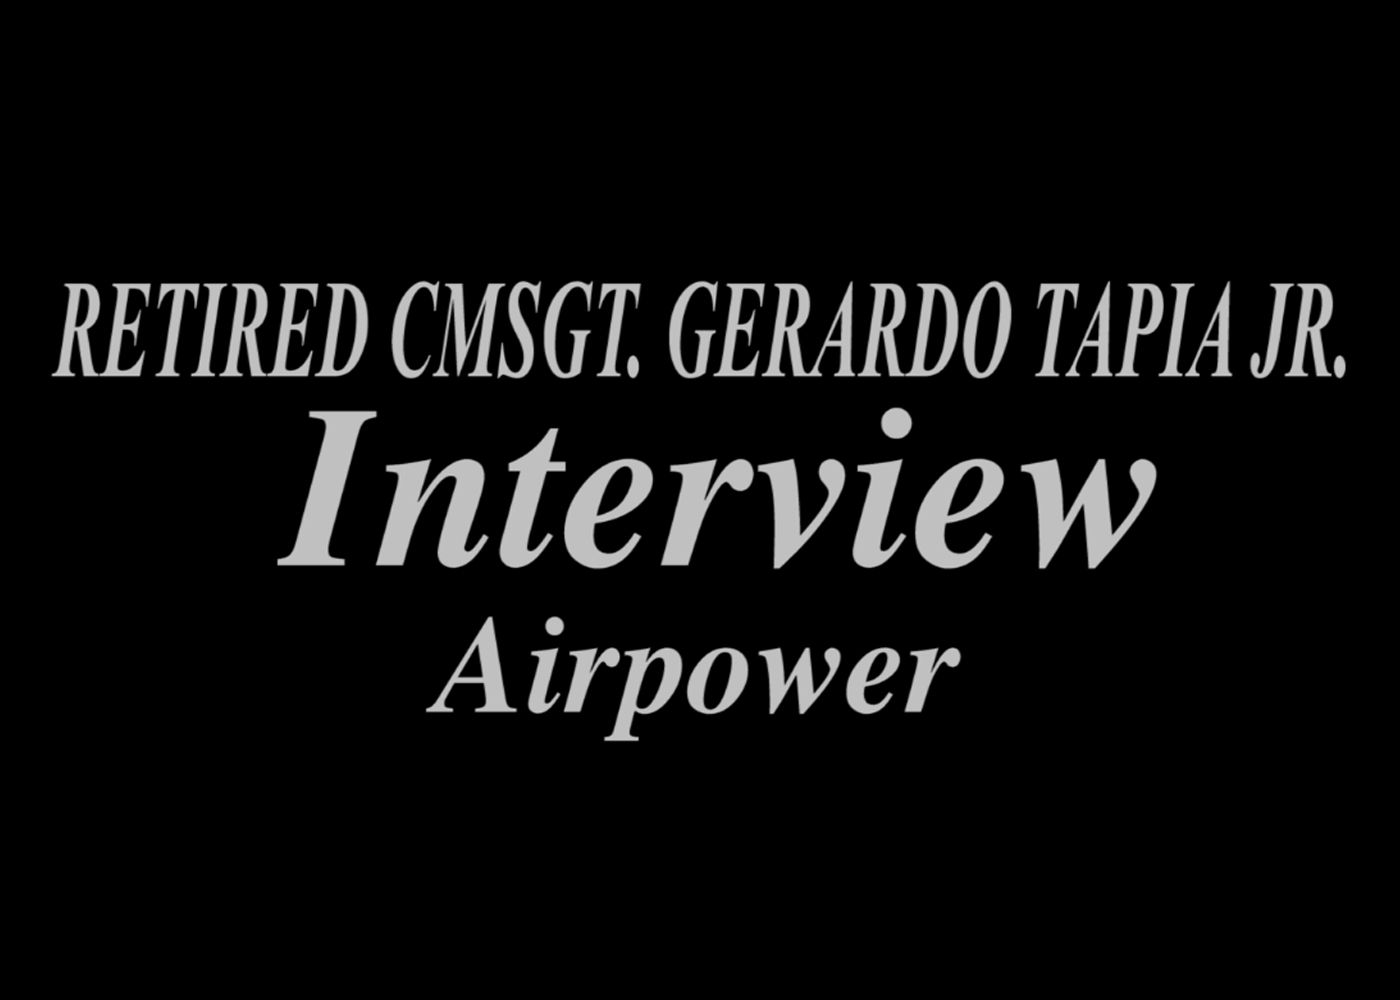 CMSgt Tapia comments